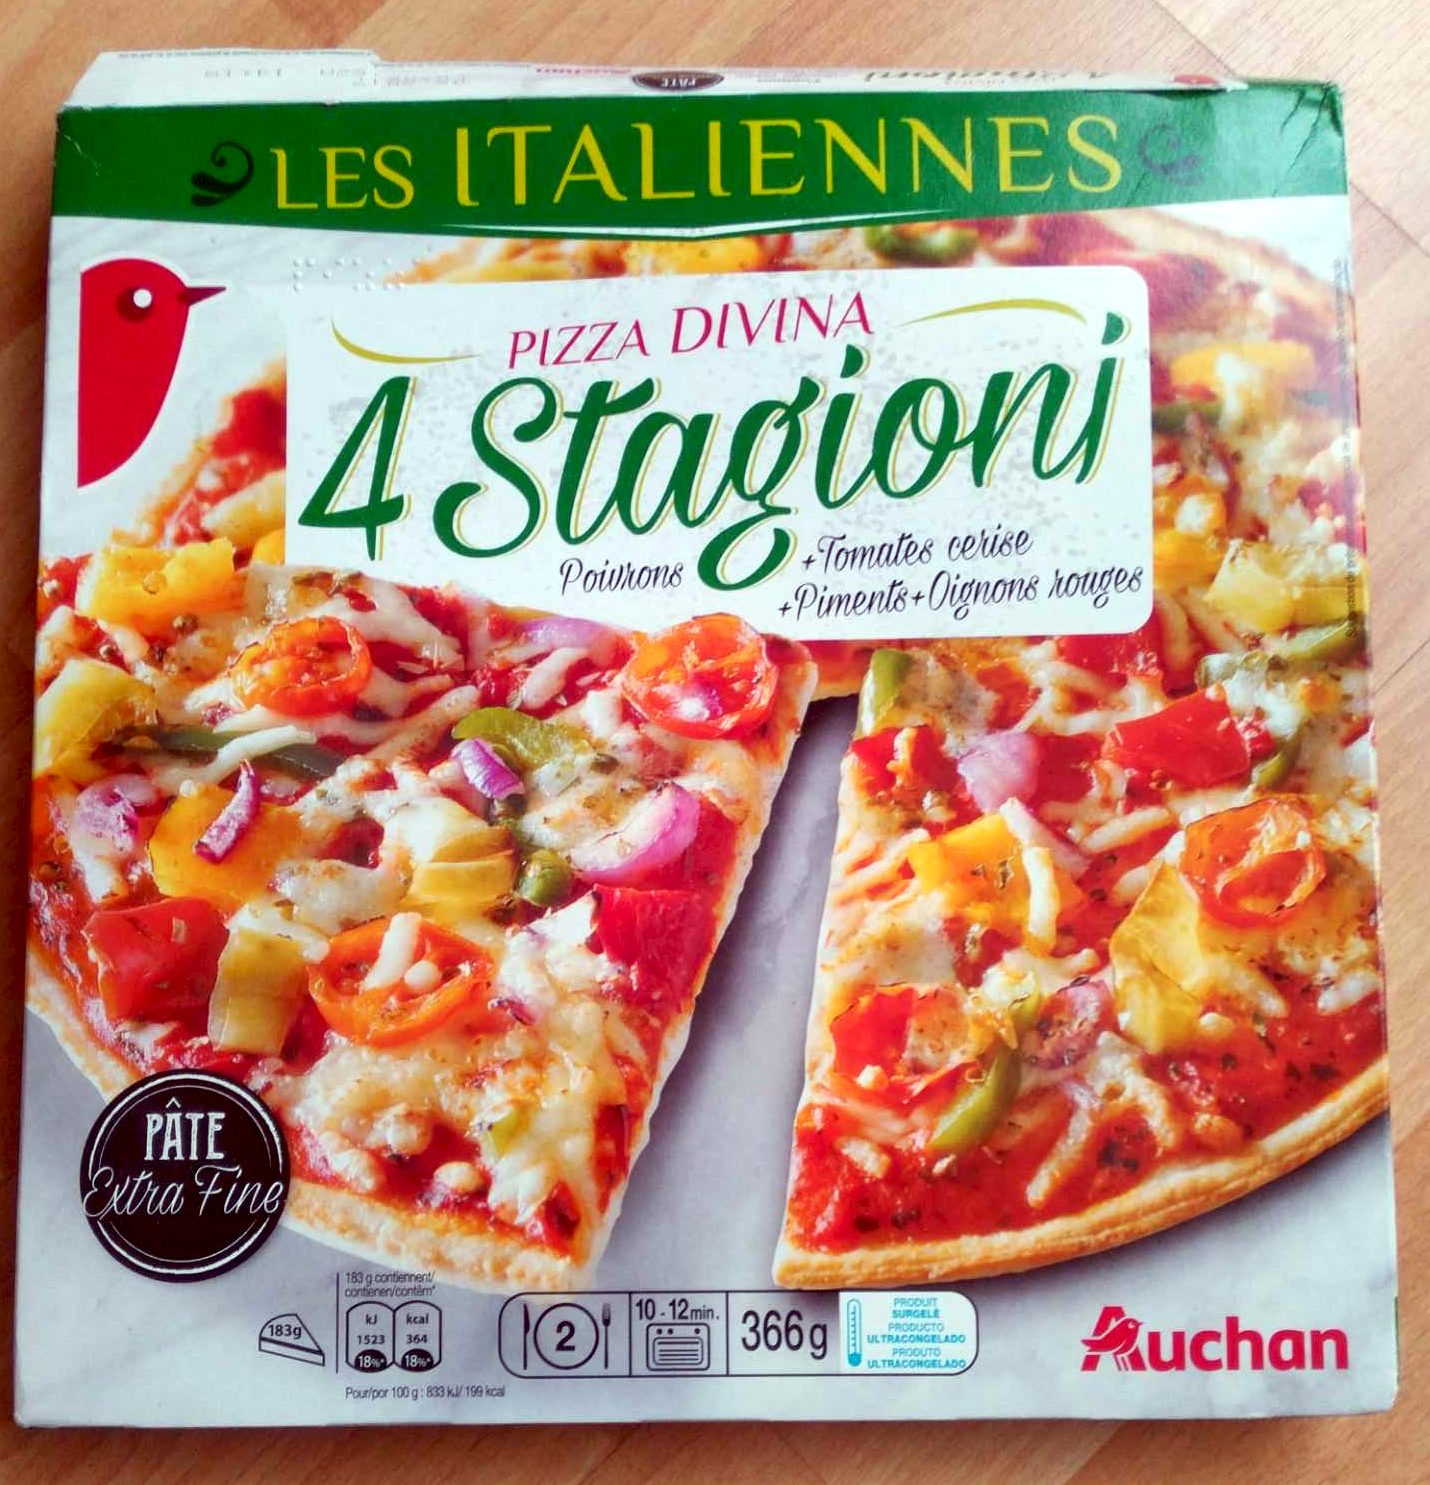 Pizza divina 4 stagioni - Product